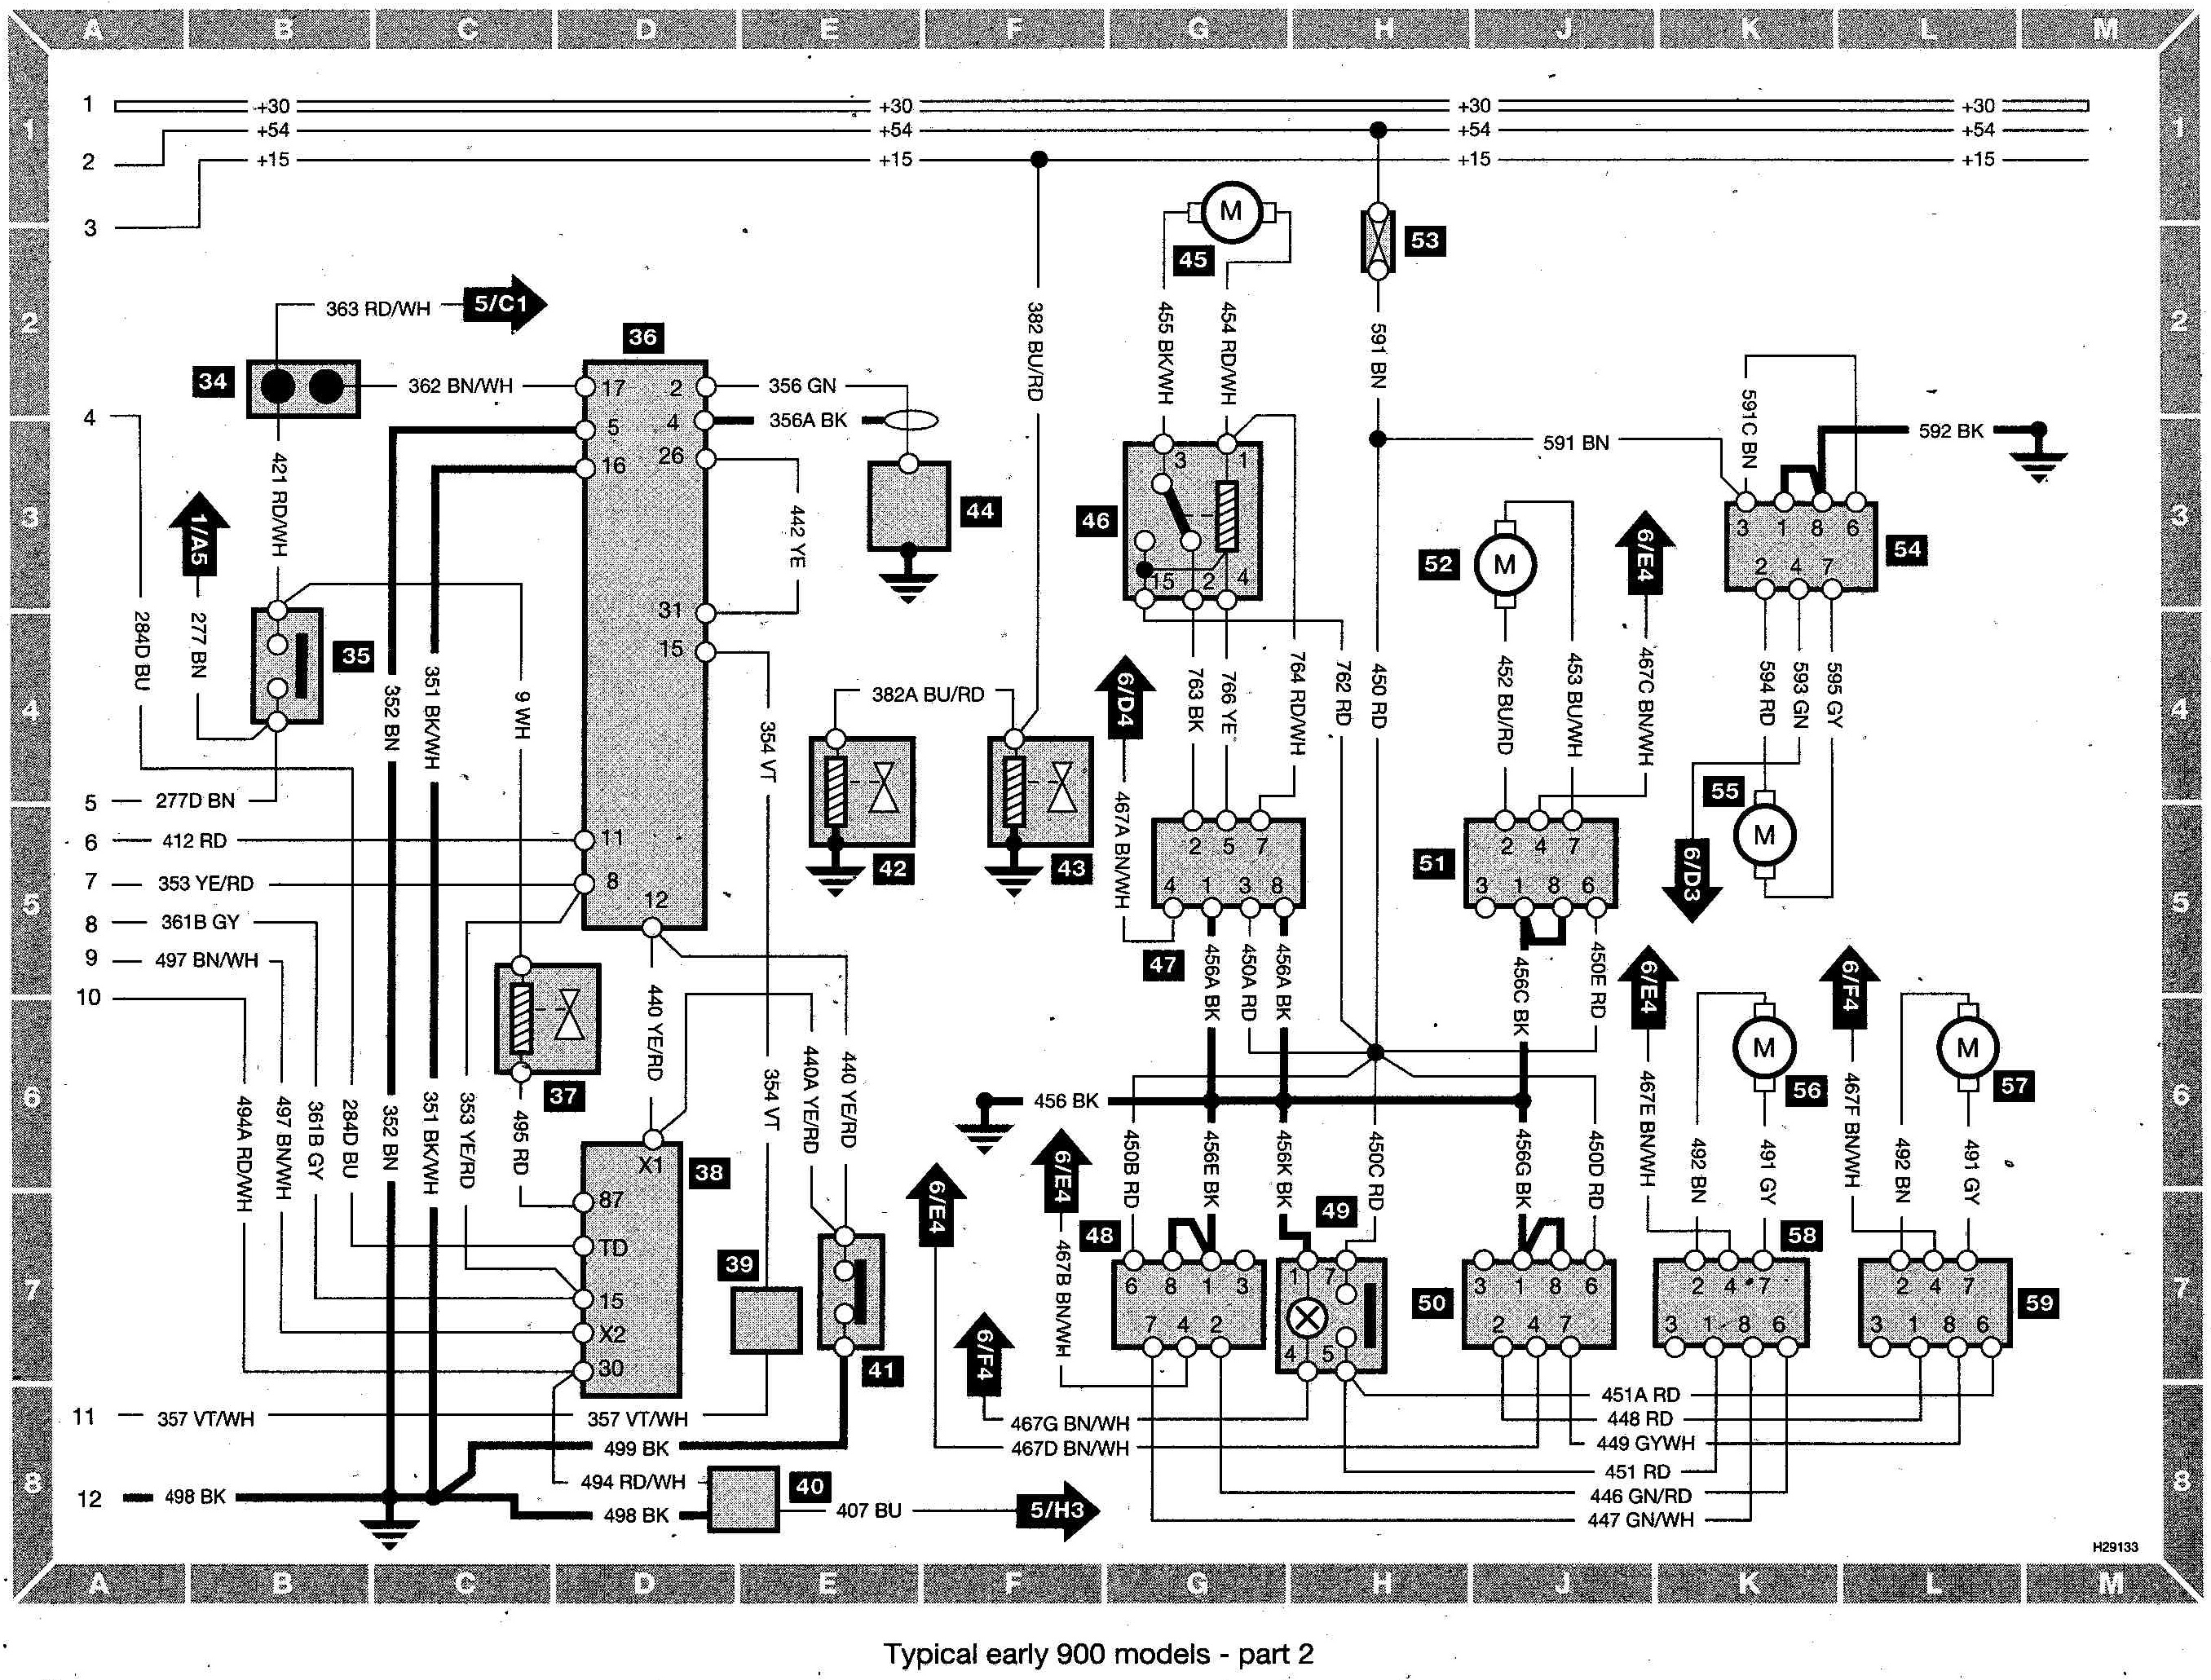 Saab 900 Wiring diagram (early models) part 2?resized665%2C505 saab wiring diagrams assa abloy wiring diagrams \u2022 free wiring 2003 saab 9-3 radio wiring diagram at eliteediting.co